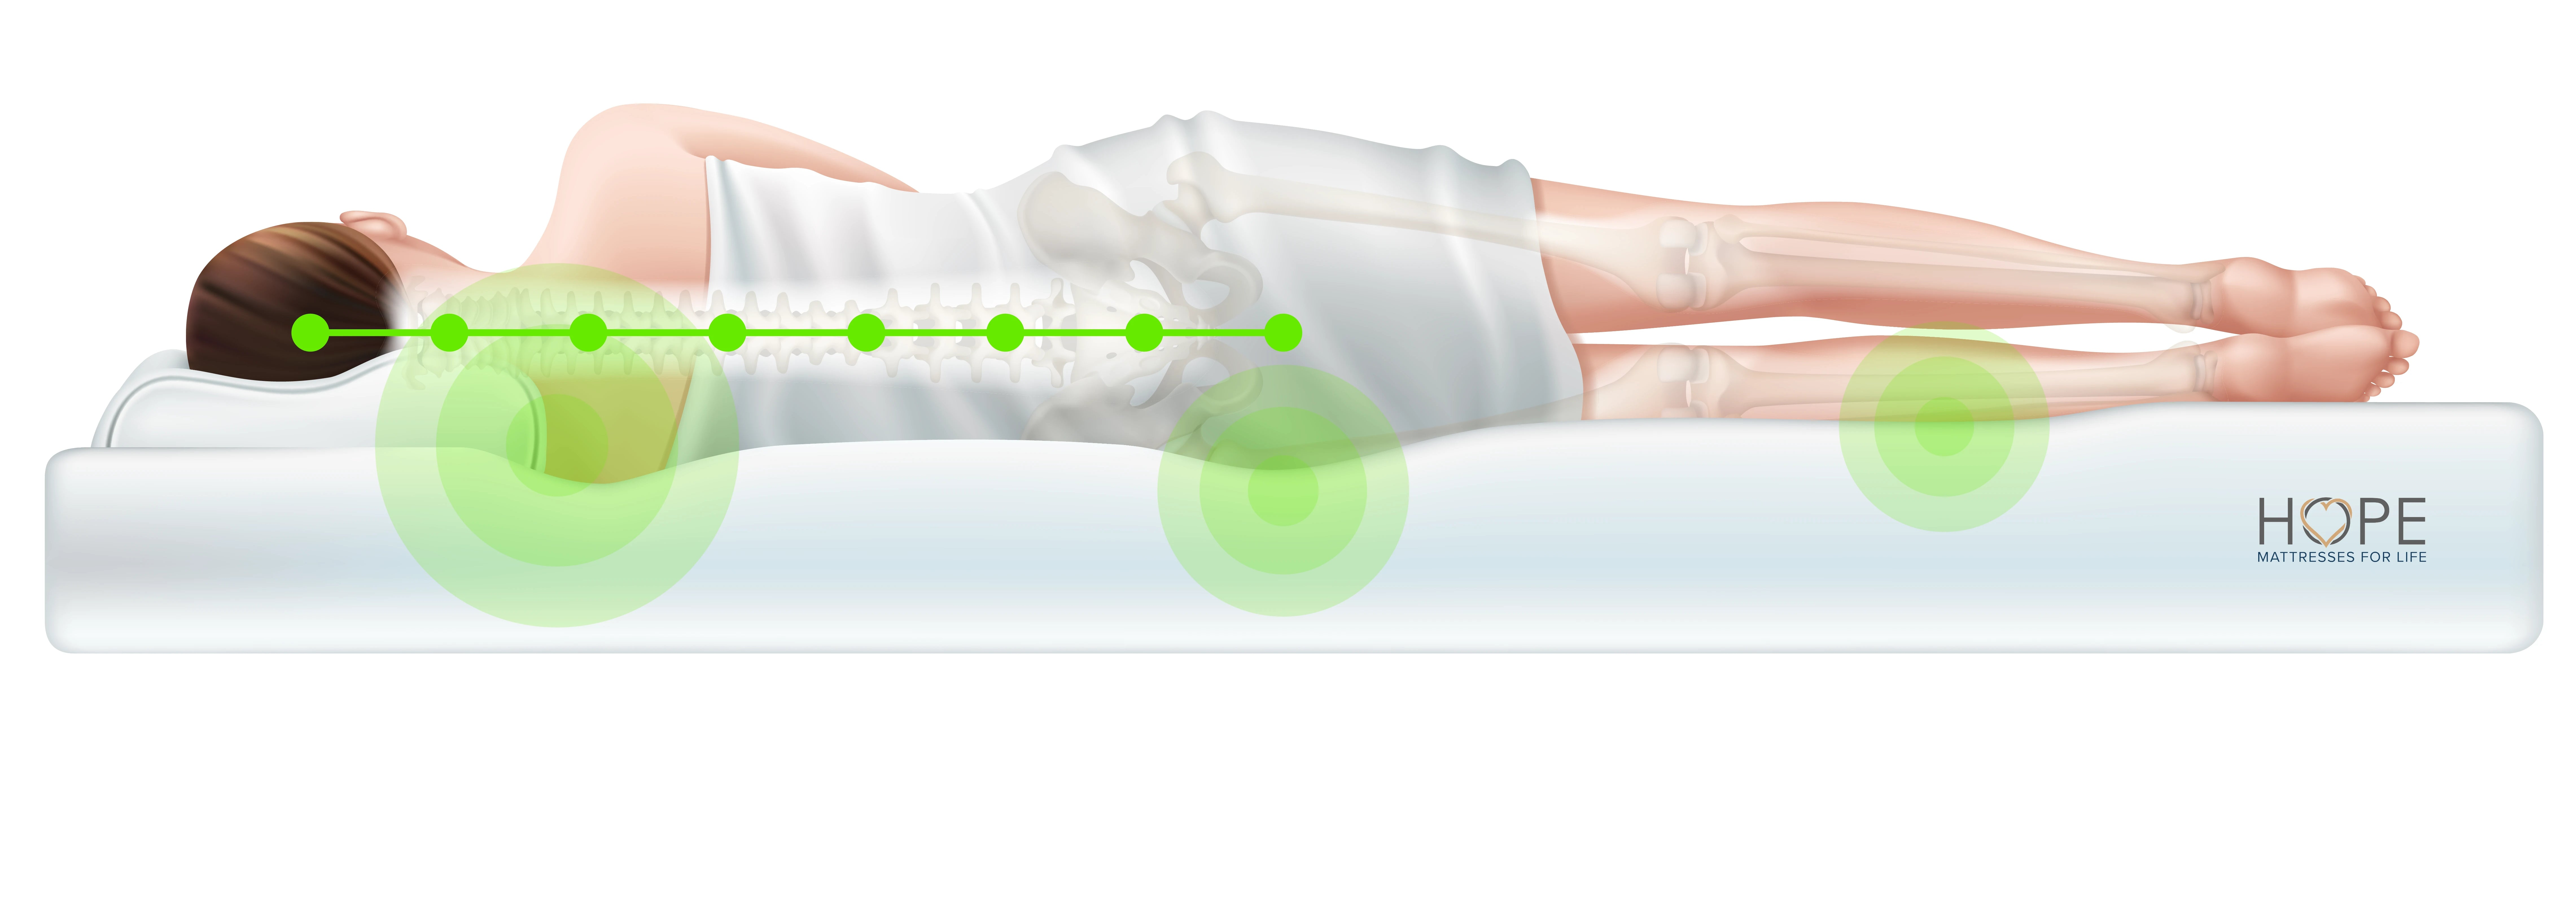 <Spinal alignment, great support, hope mattress, cradle your pressure points, comfortable>